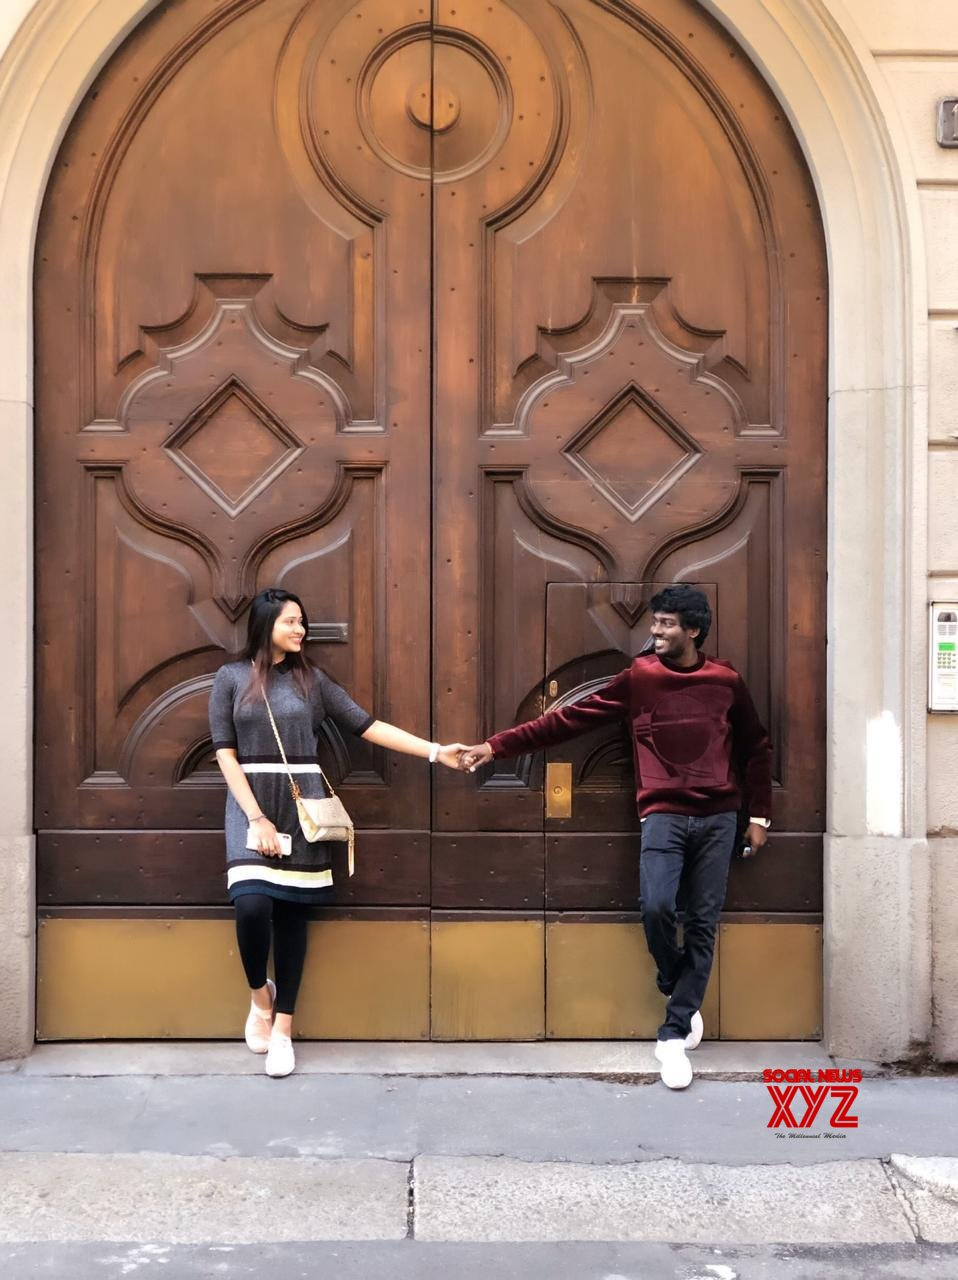 Atlee And Priya Atlee Still From Italy Celebrating Their Wedding Anniversary